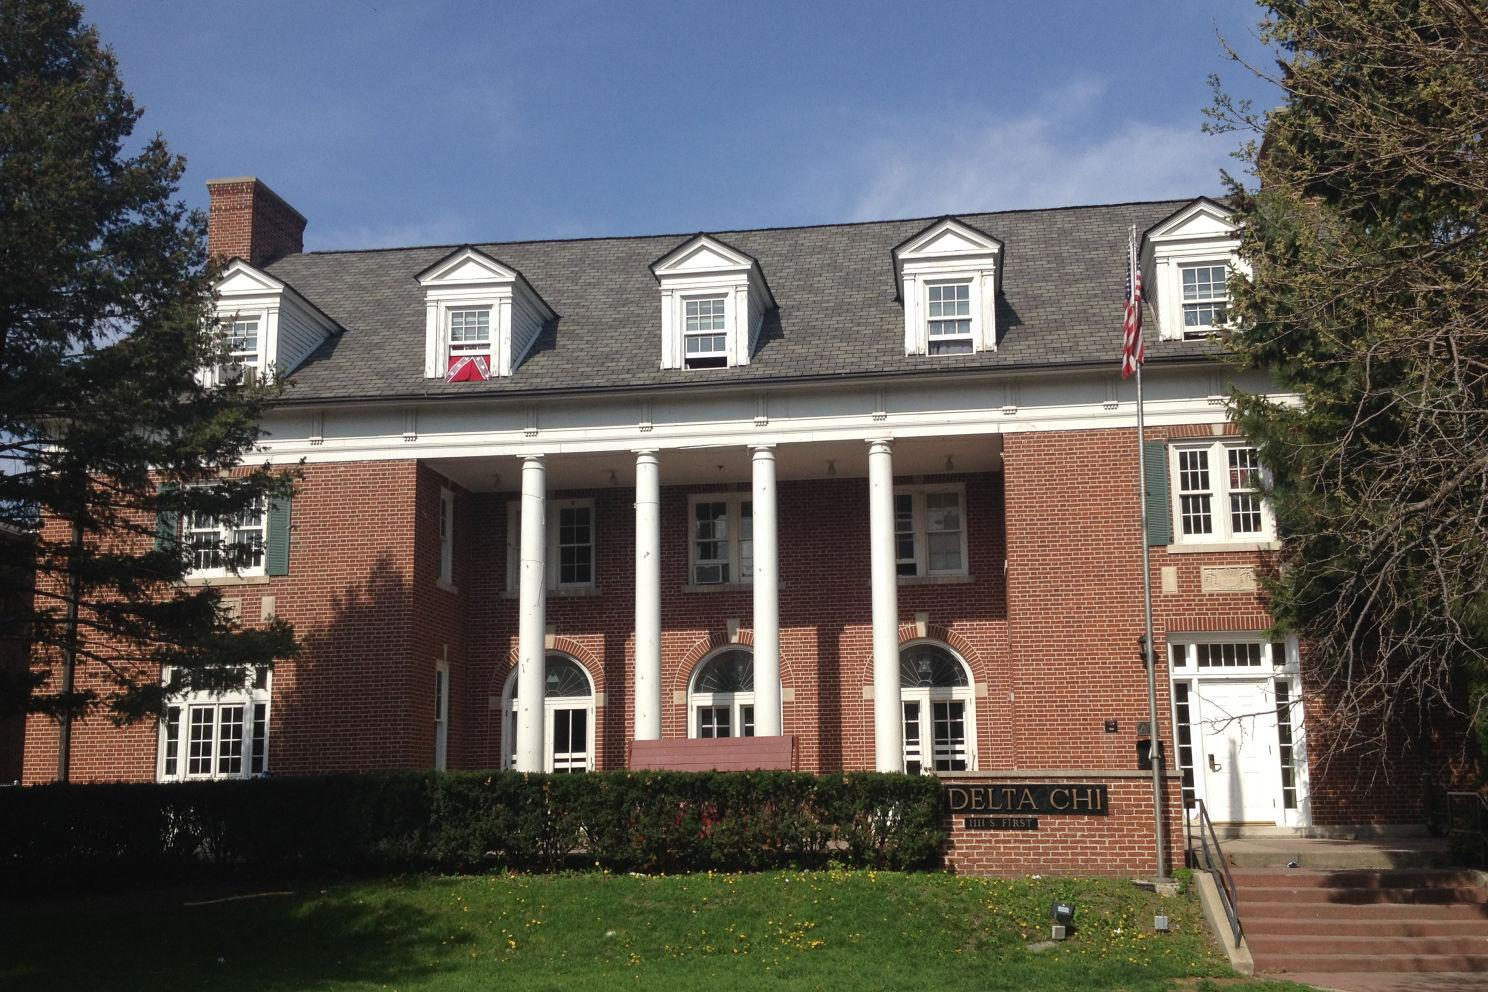 A Confederate flag hung in the window of the Delta Chi fraternity on First Street last May.